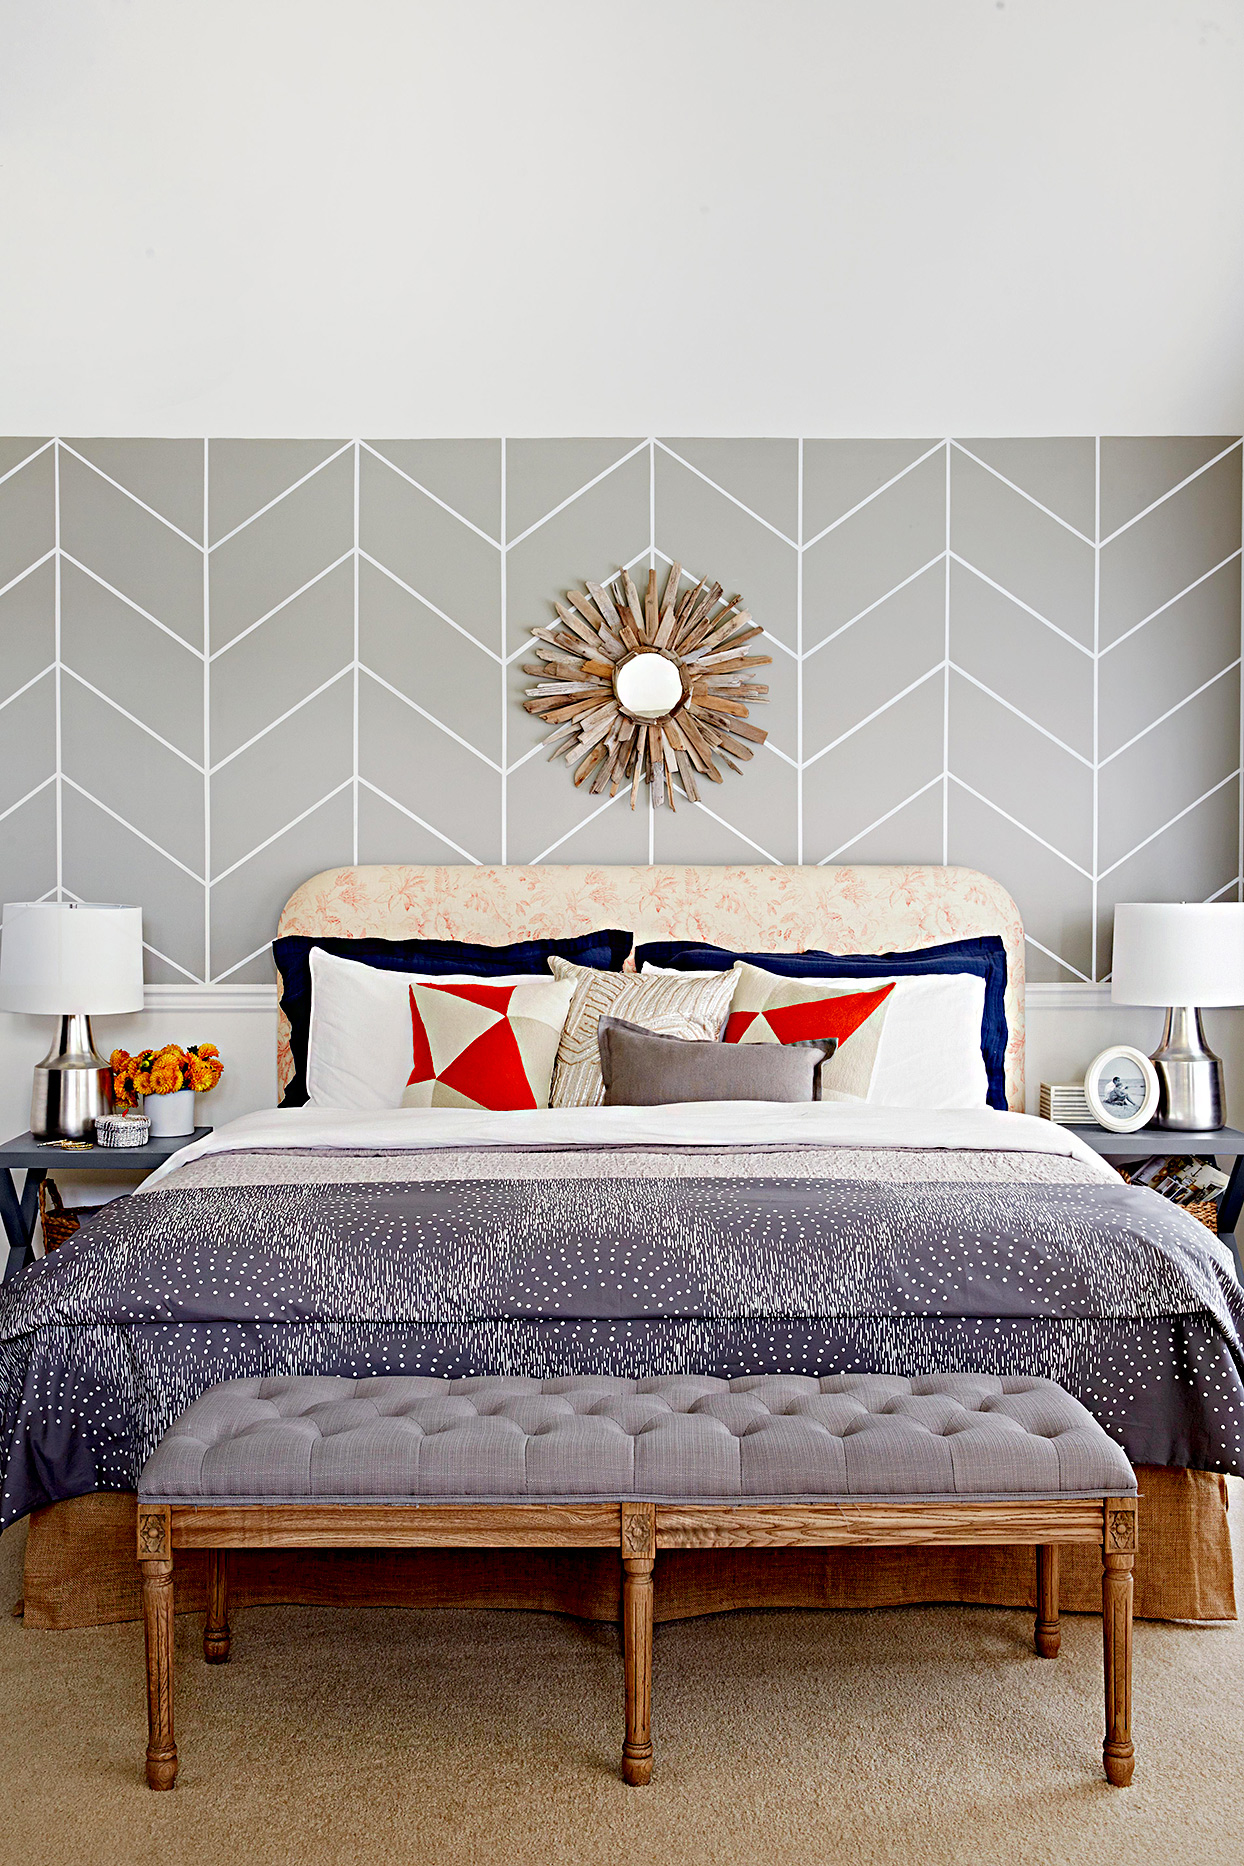 Bedroom with geometric gray walls and gray bedspread